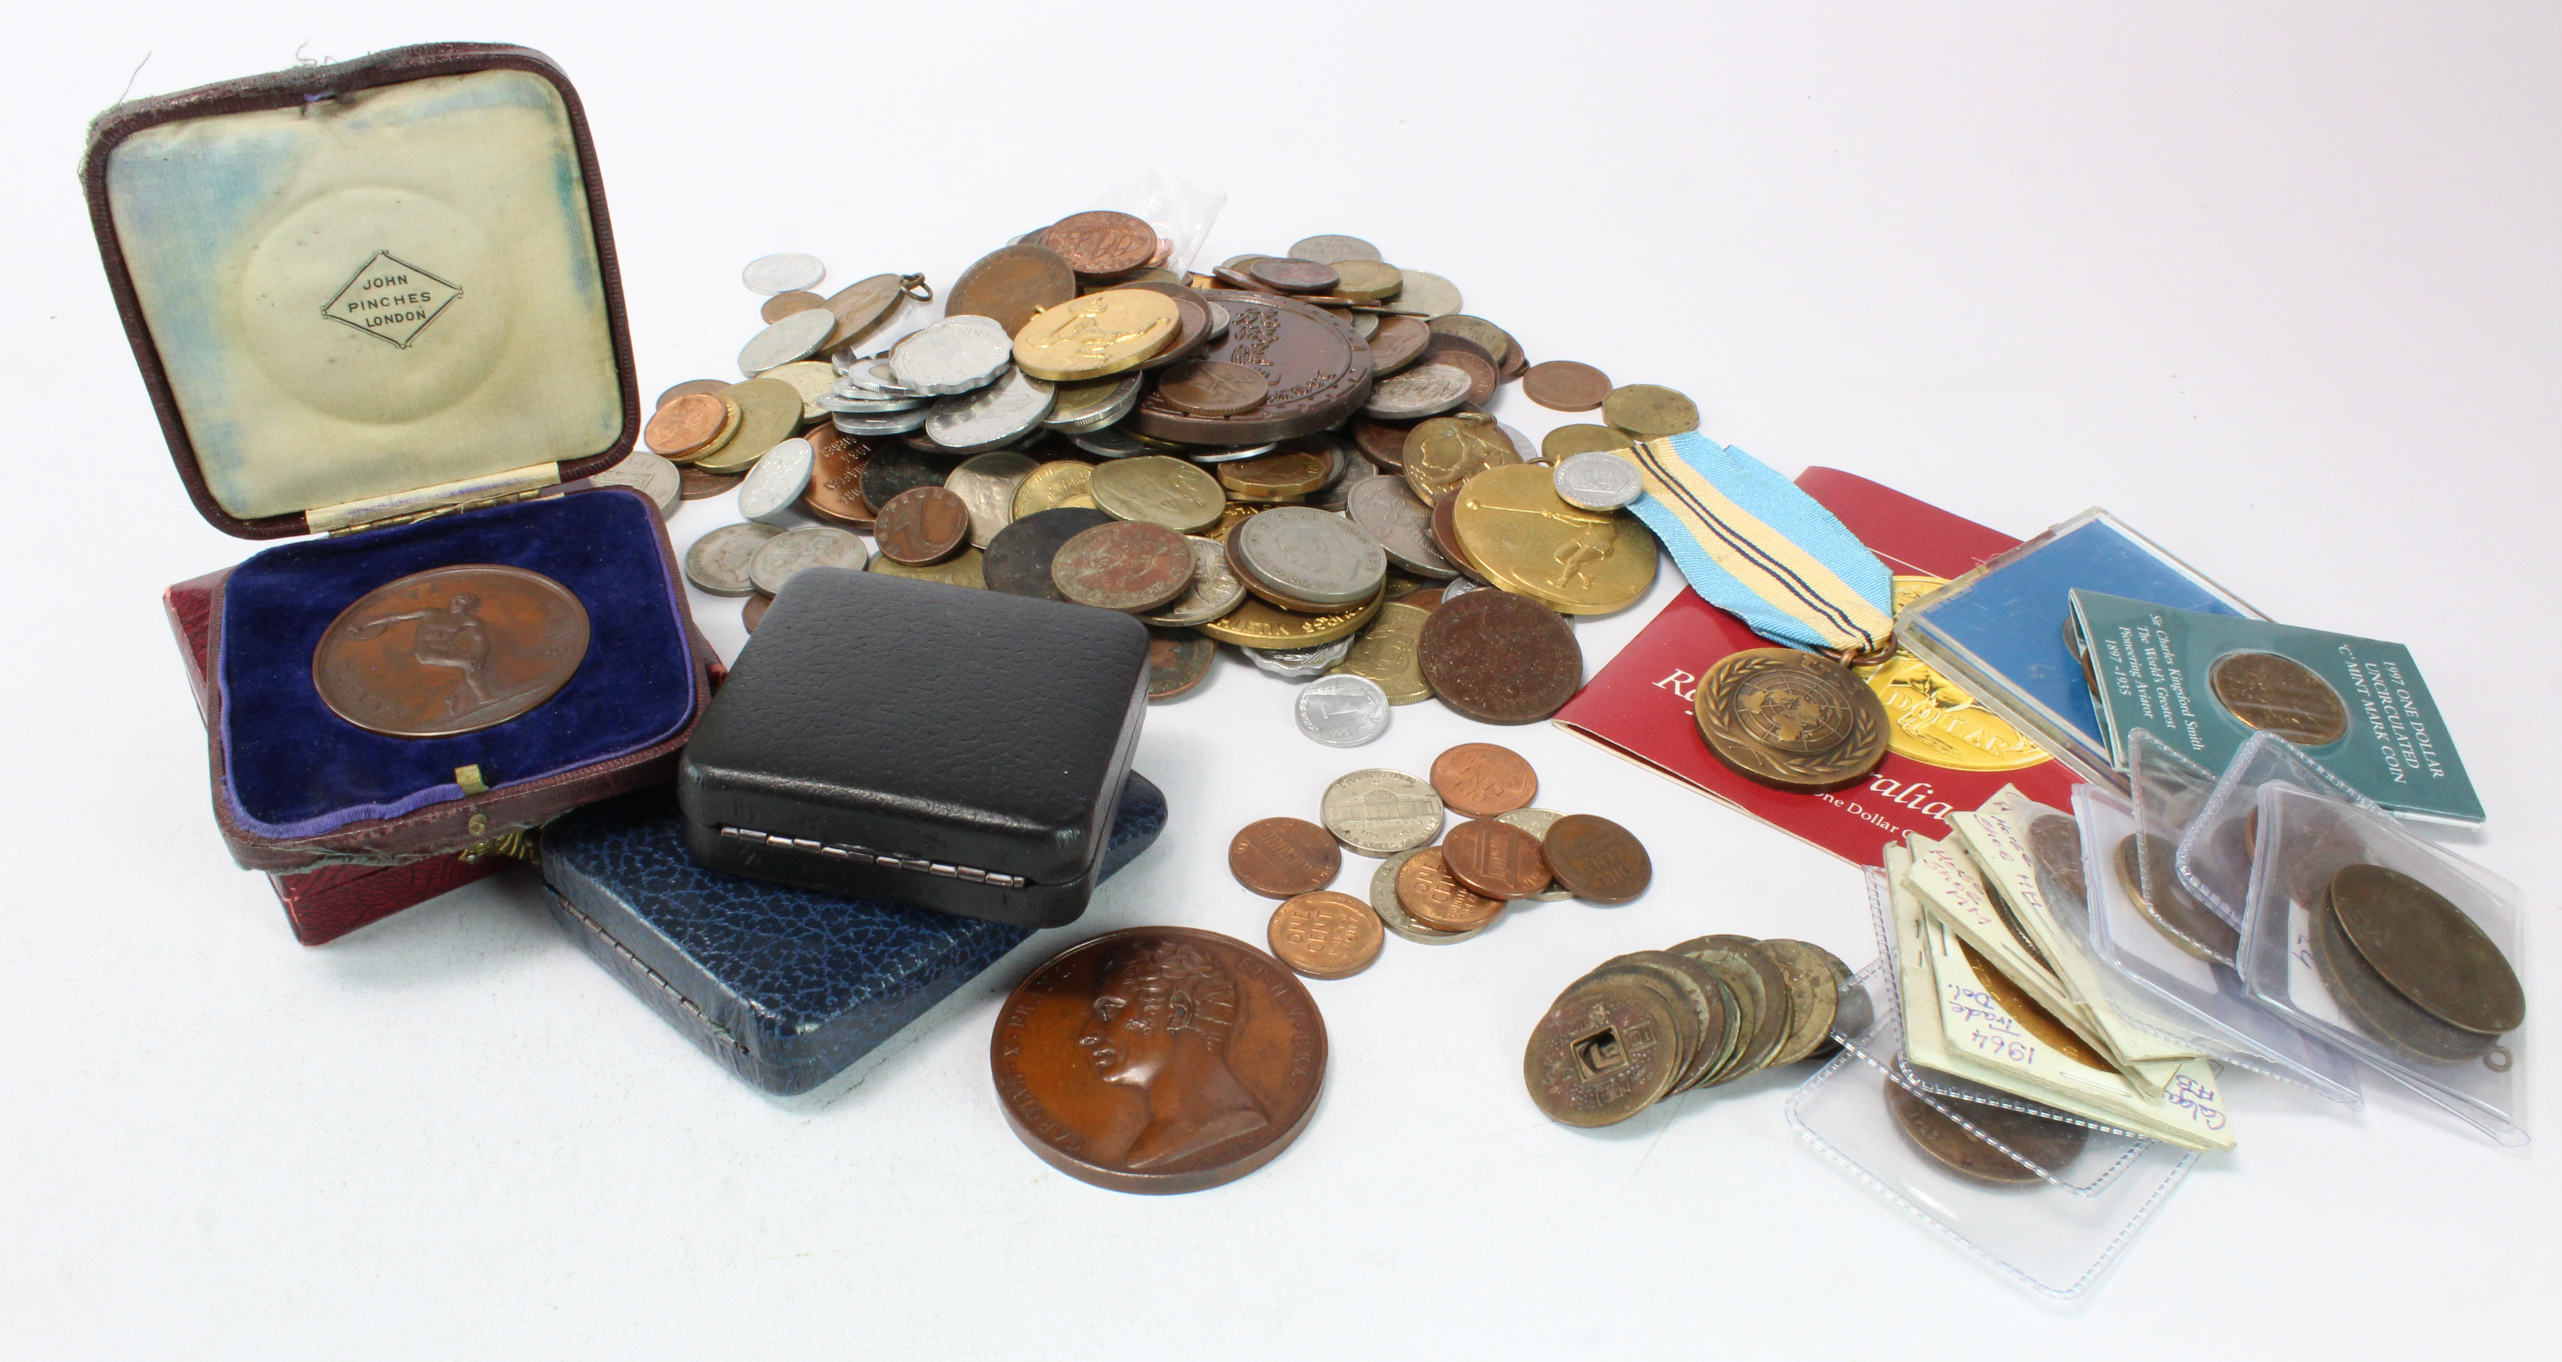 World Medals, Tokens & Coins (over 200), a large base metal collection, many countries